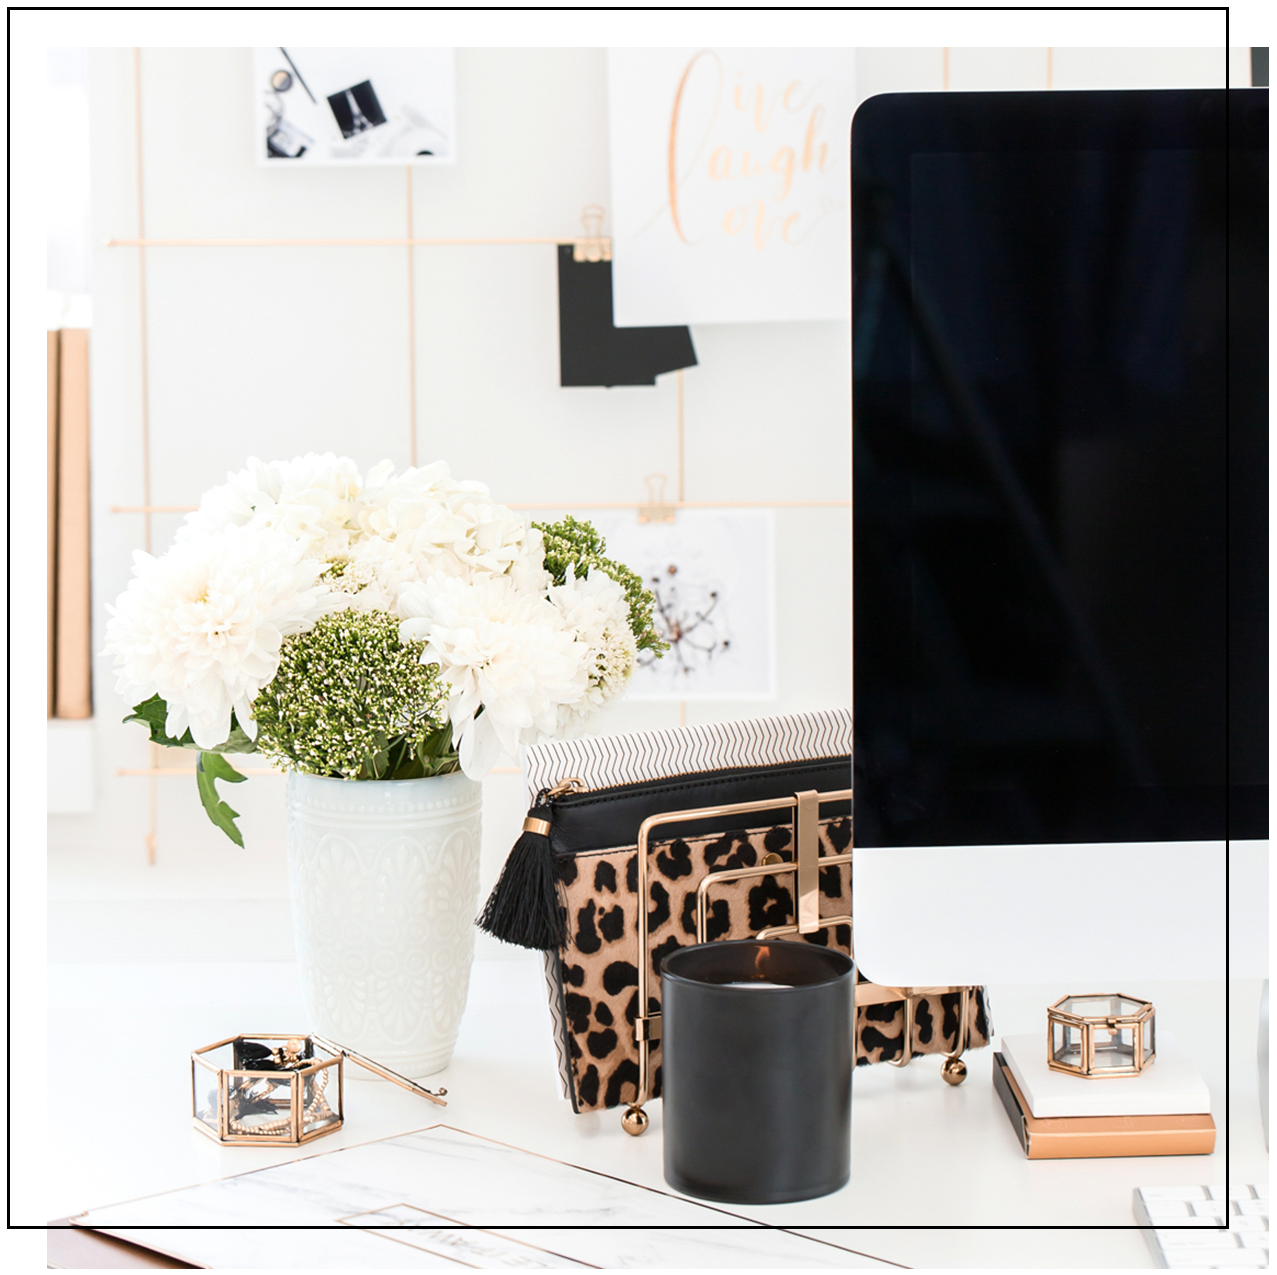 - Need some inspiration, tips, and tutorials on how to create visuals that connect and convert? Want a sneak peek inside the Styled Stock Library? The blog is where you'll find all the visual eye-candy.